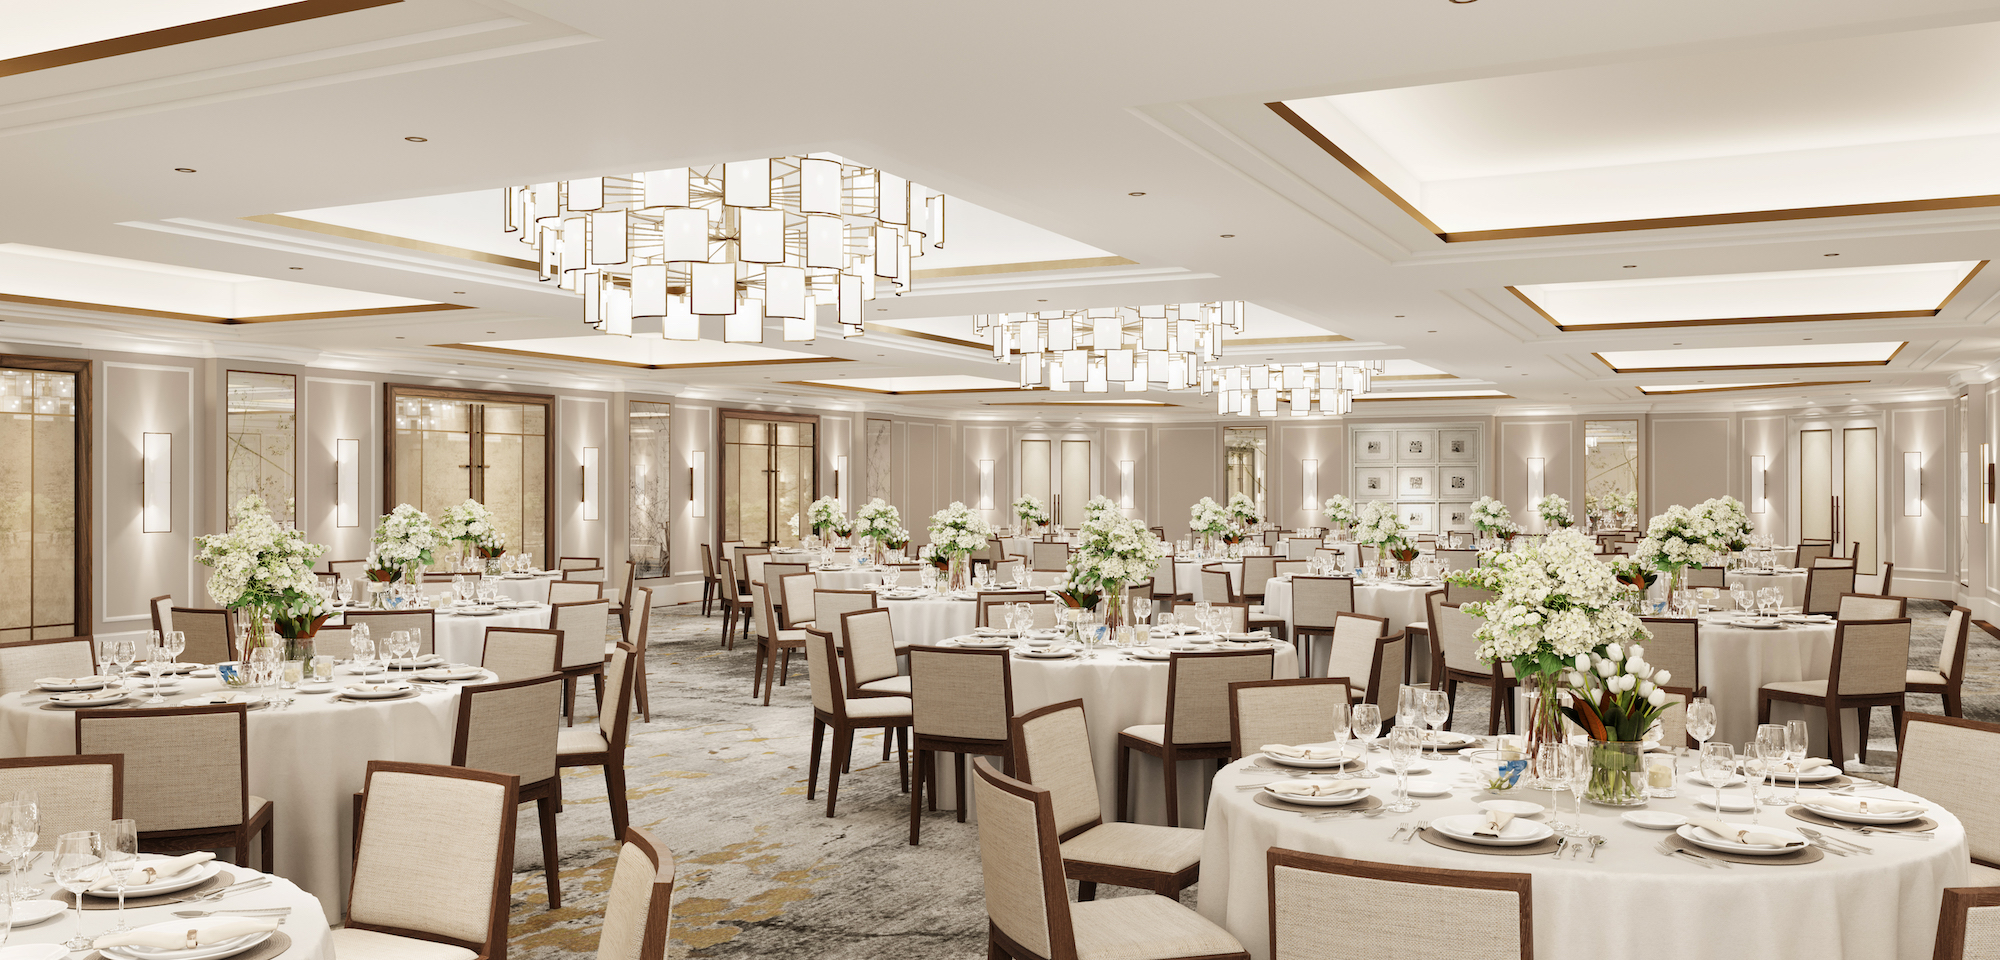 The Carlton Tower Jumeirah, reopens doors early 2021 after renovation, ballroom